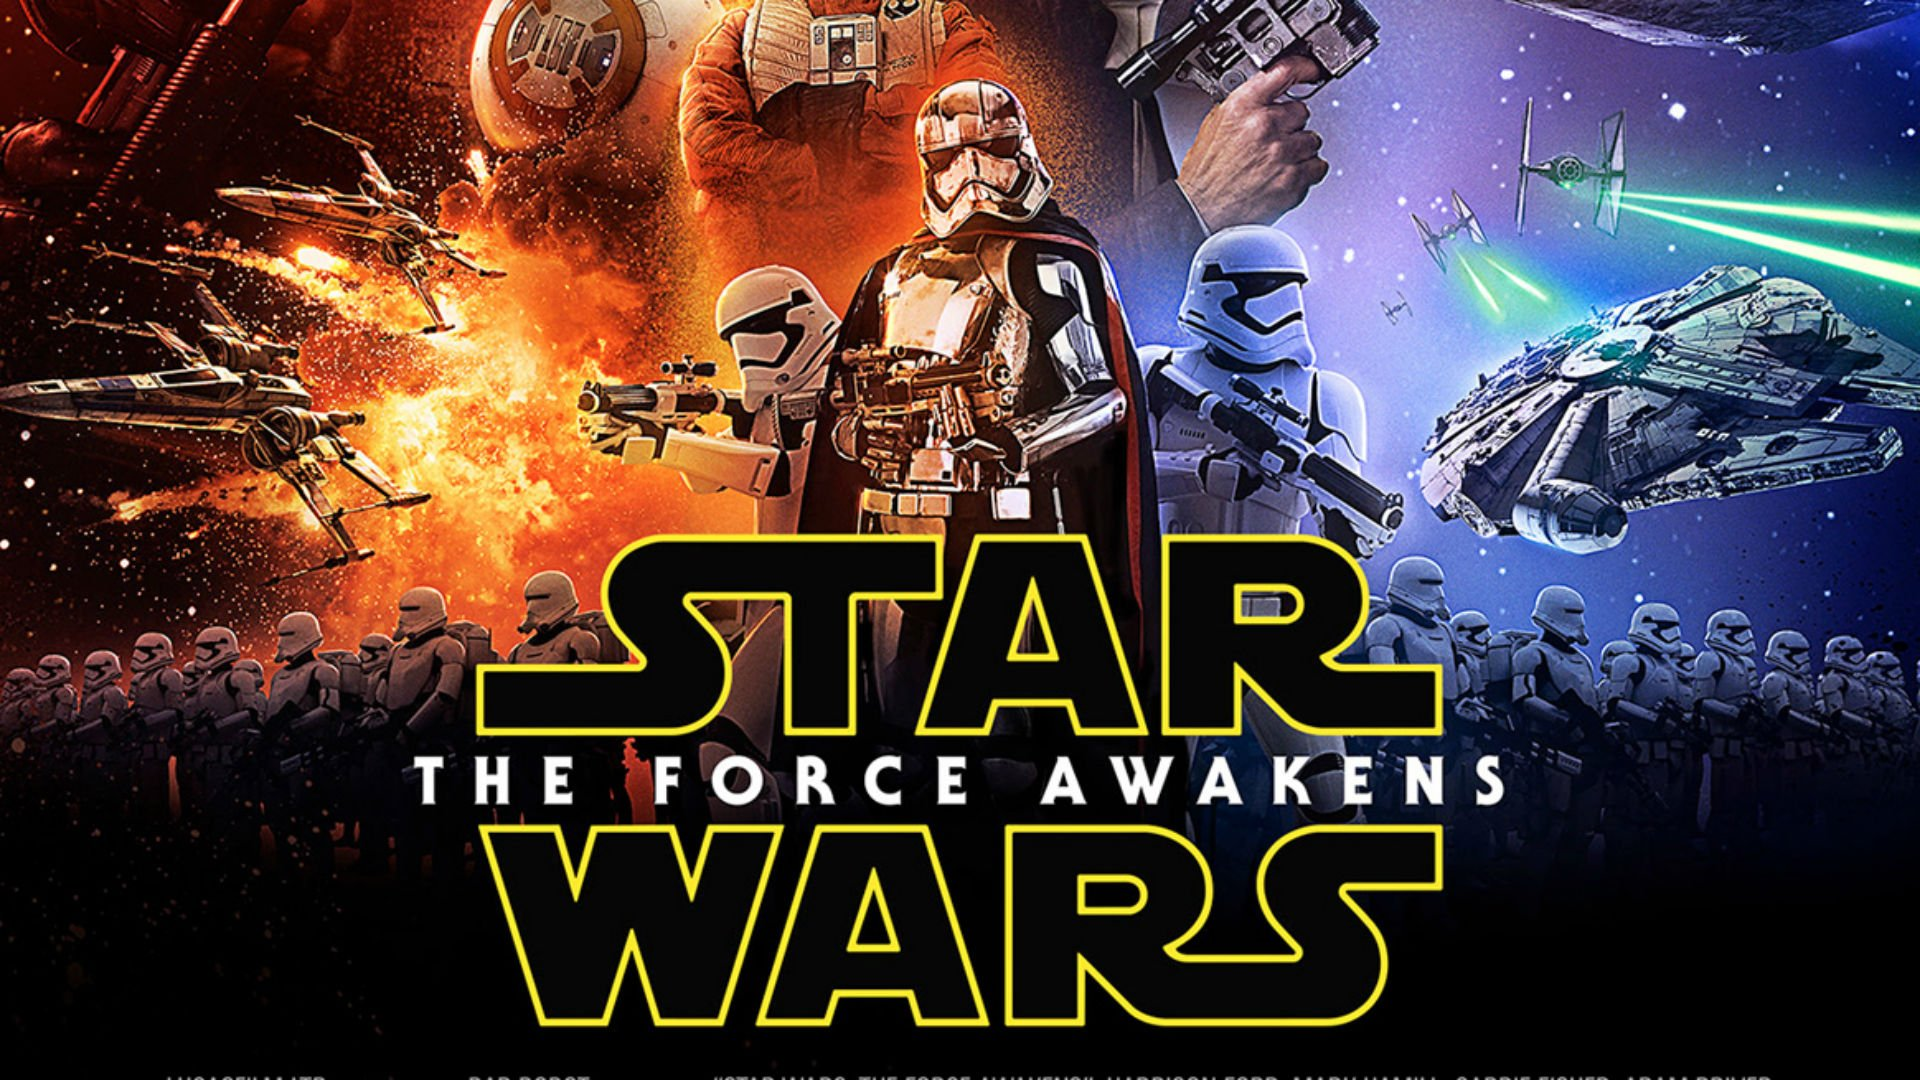 Free Download Star Wars Force Awakens Background 92 Images In Collection Page 1 1920x1080 For Your Desktop Mobile Tablet Explore 54 Star Wars Force Background Star Wars Force Background